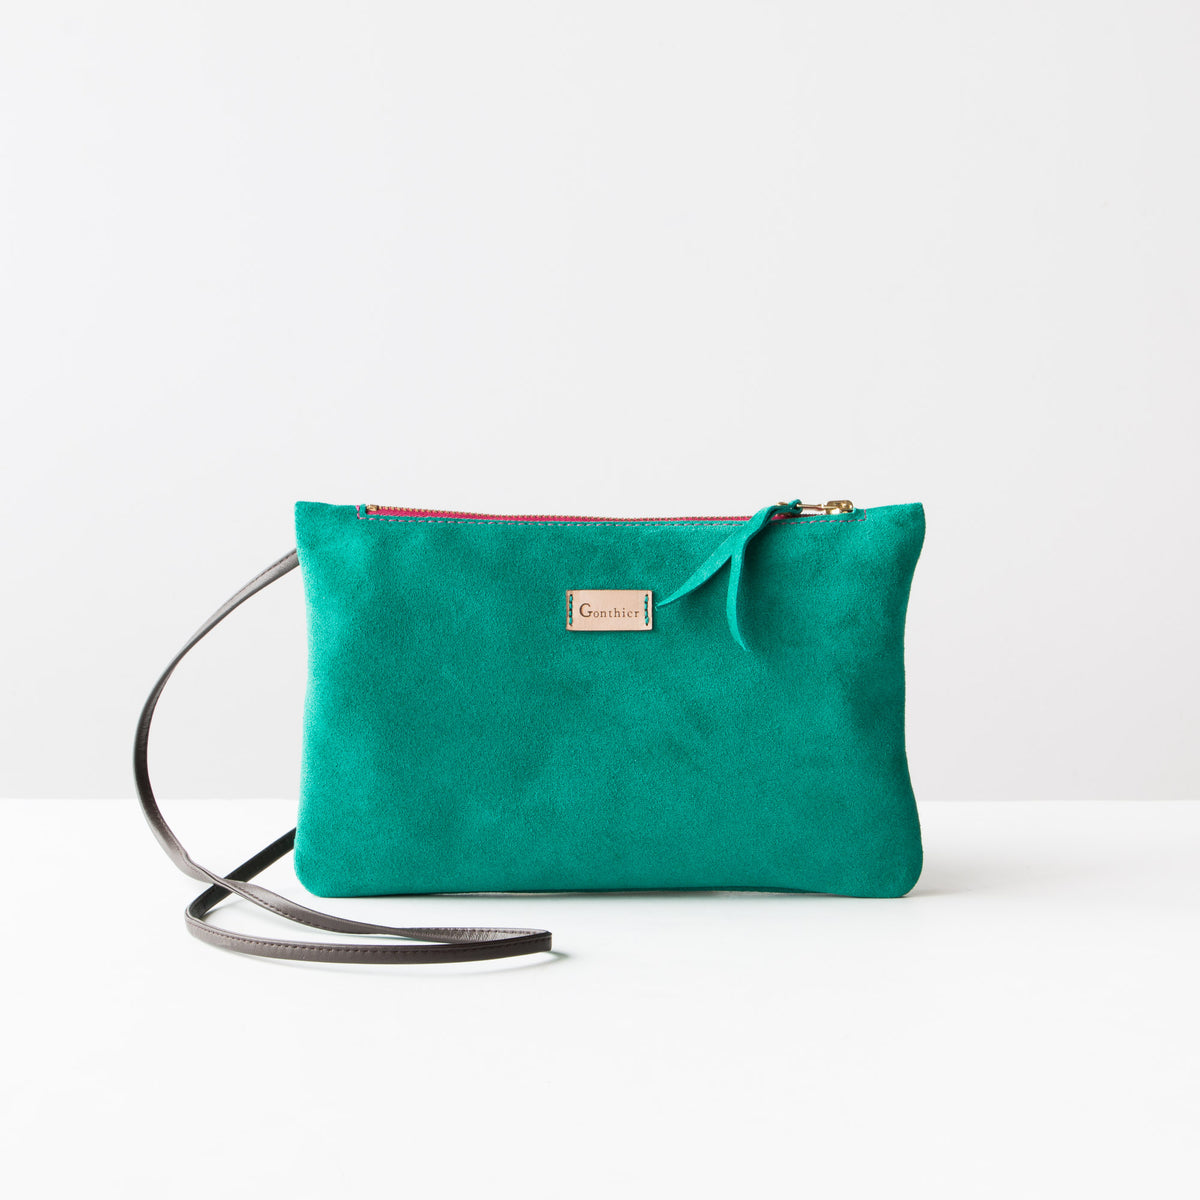 Turquoise & Pink - Handmade Small Shoulder Bag in Suede Calfskin - Sold by Chic & Basta